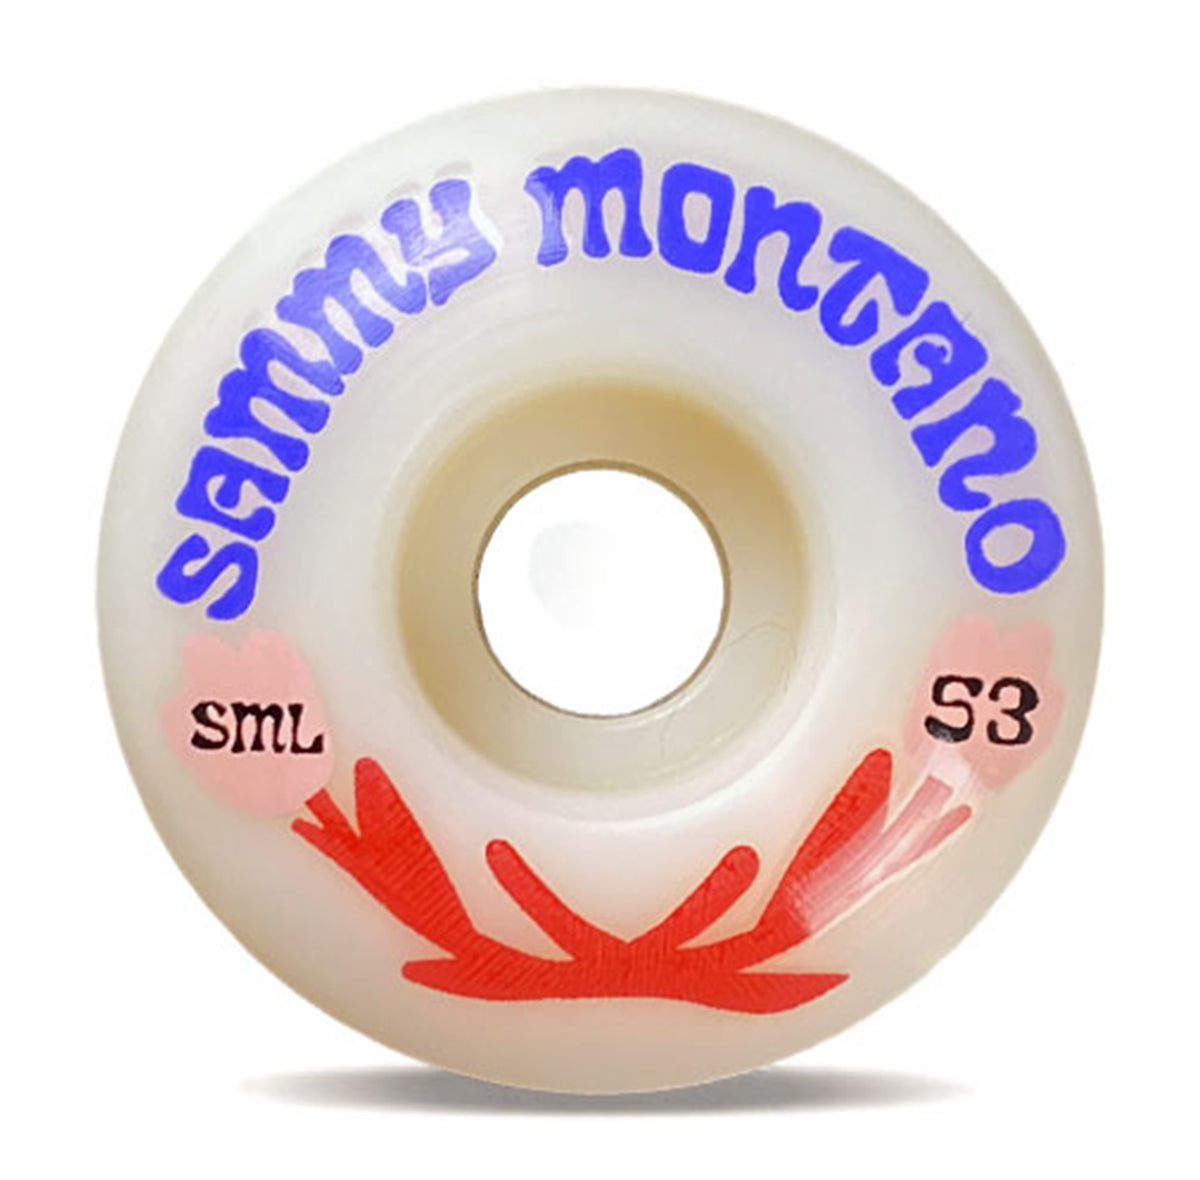 SML Wheels Sammy Montano Love Series OG Wide 99a 53mm